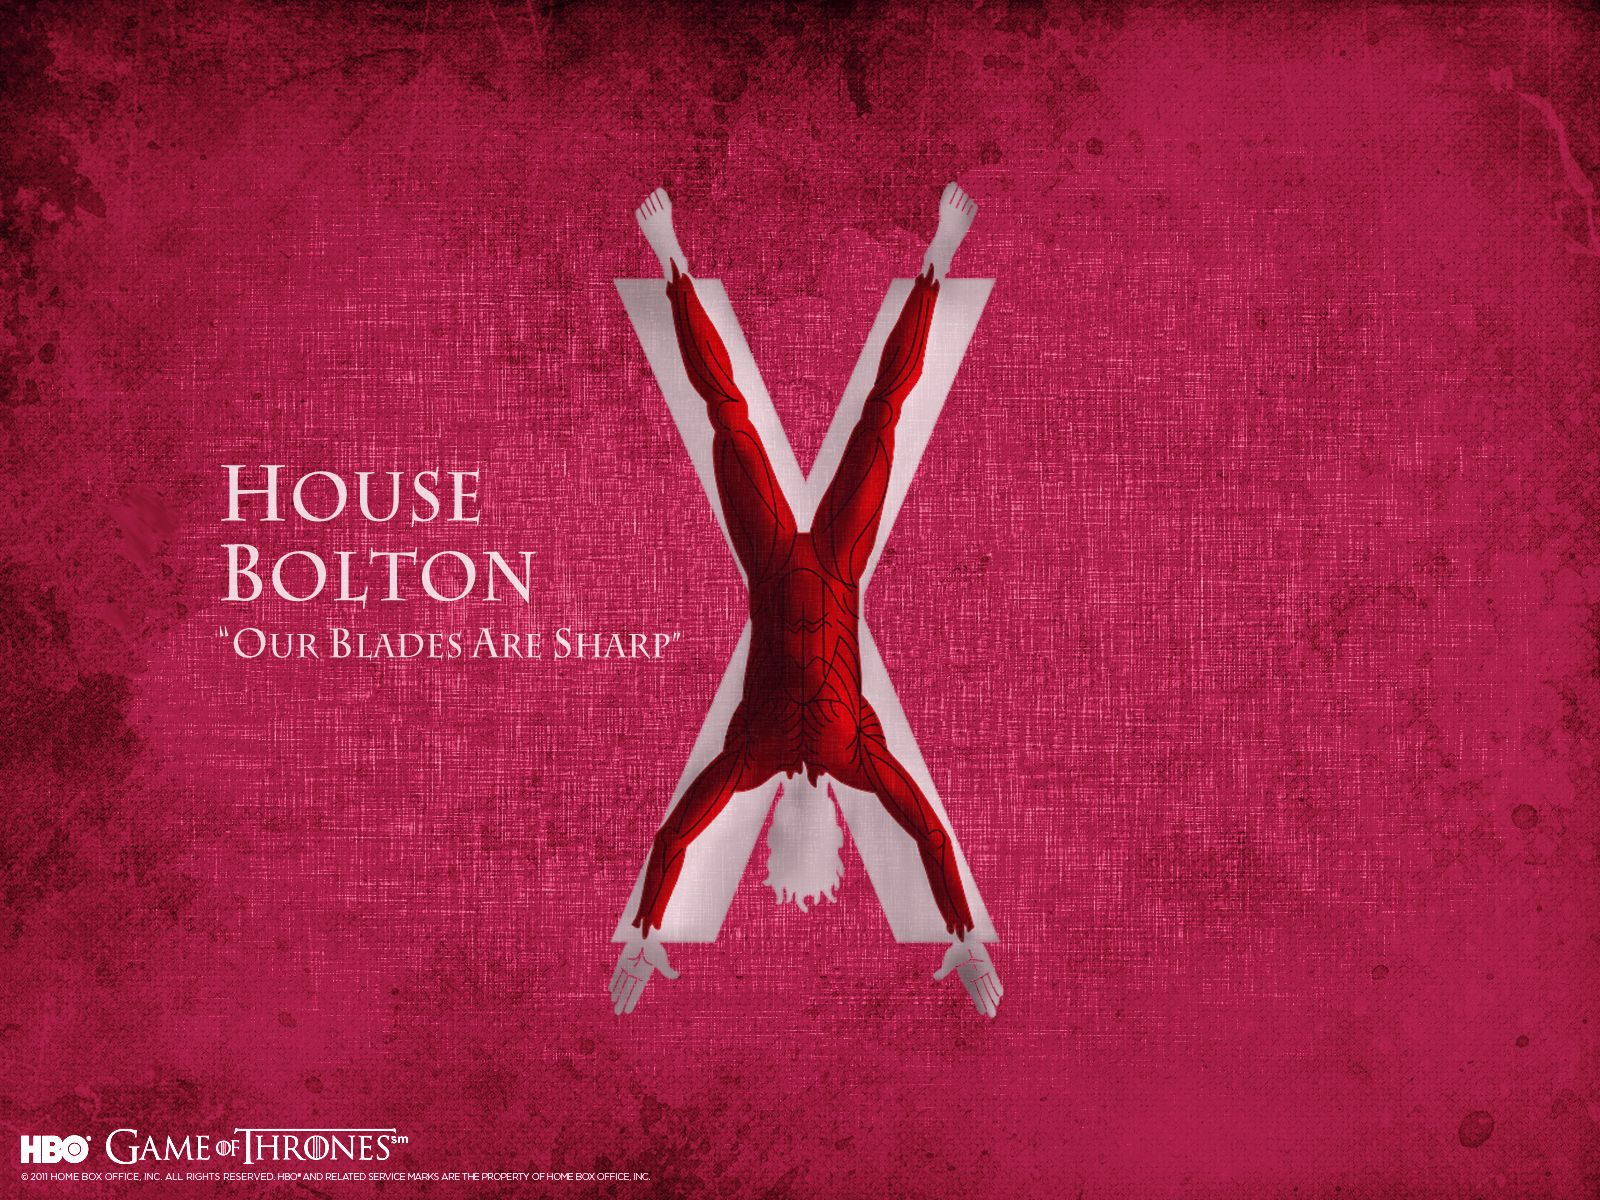 Game Of Thrones Wallpaper House Bolton Game Of Thrones Houses Bolton Game Of Thrones Game Of Thrones